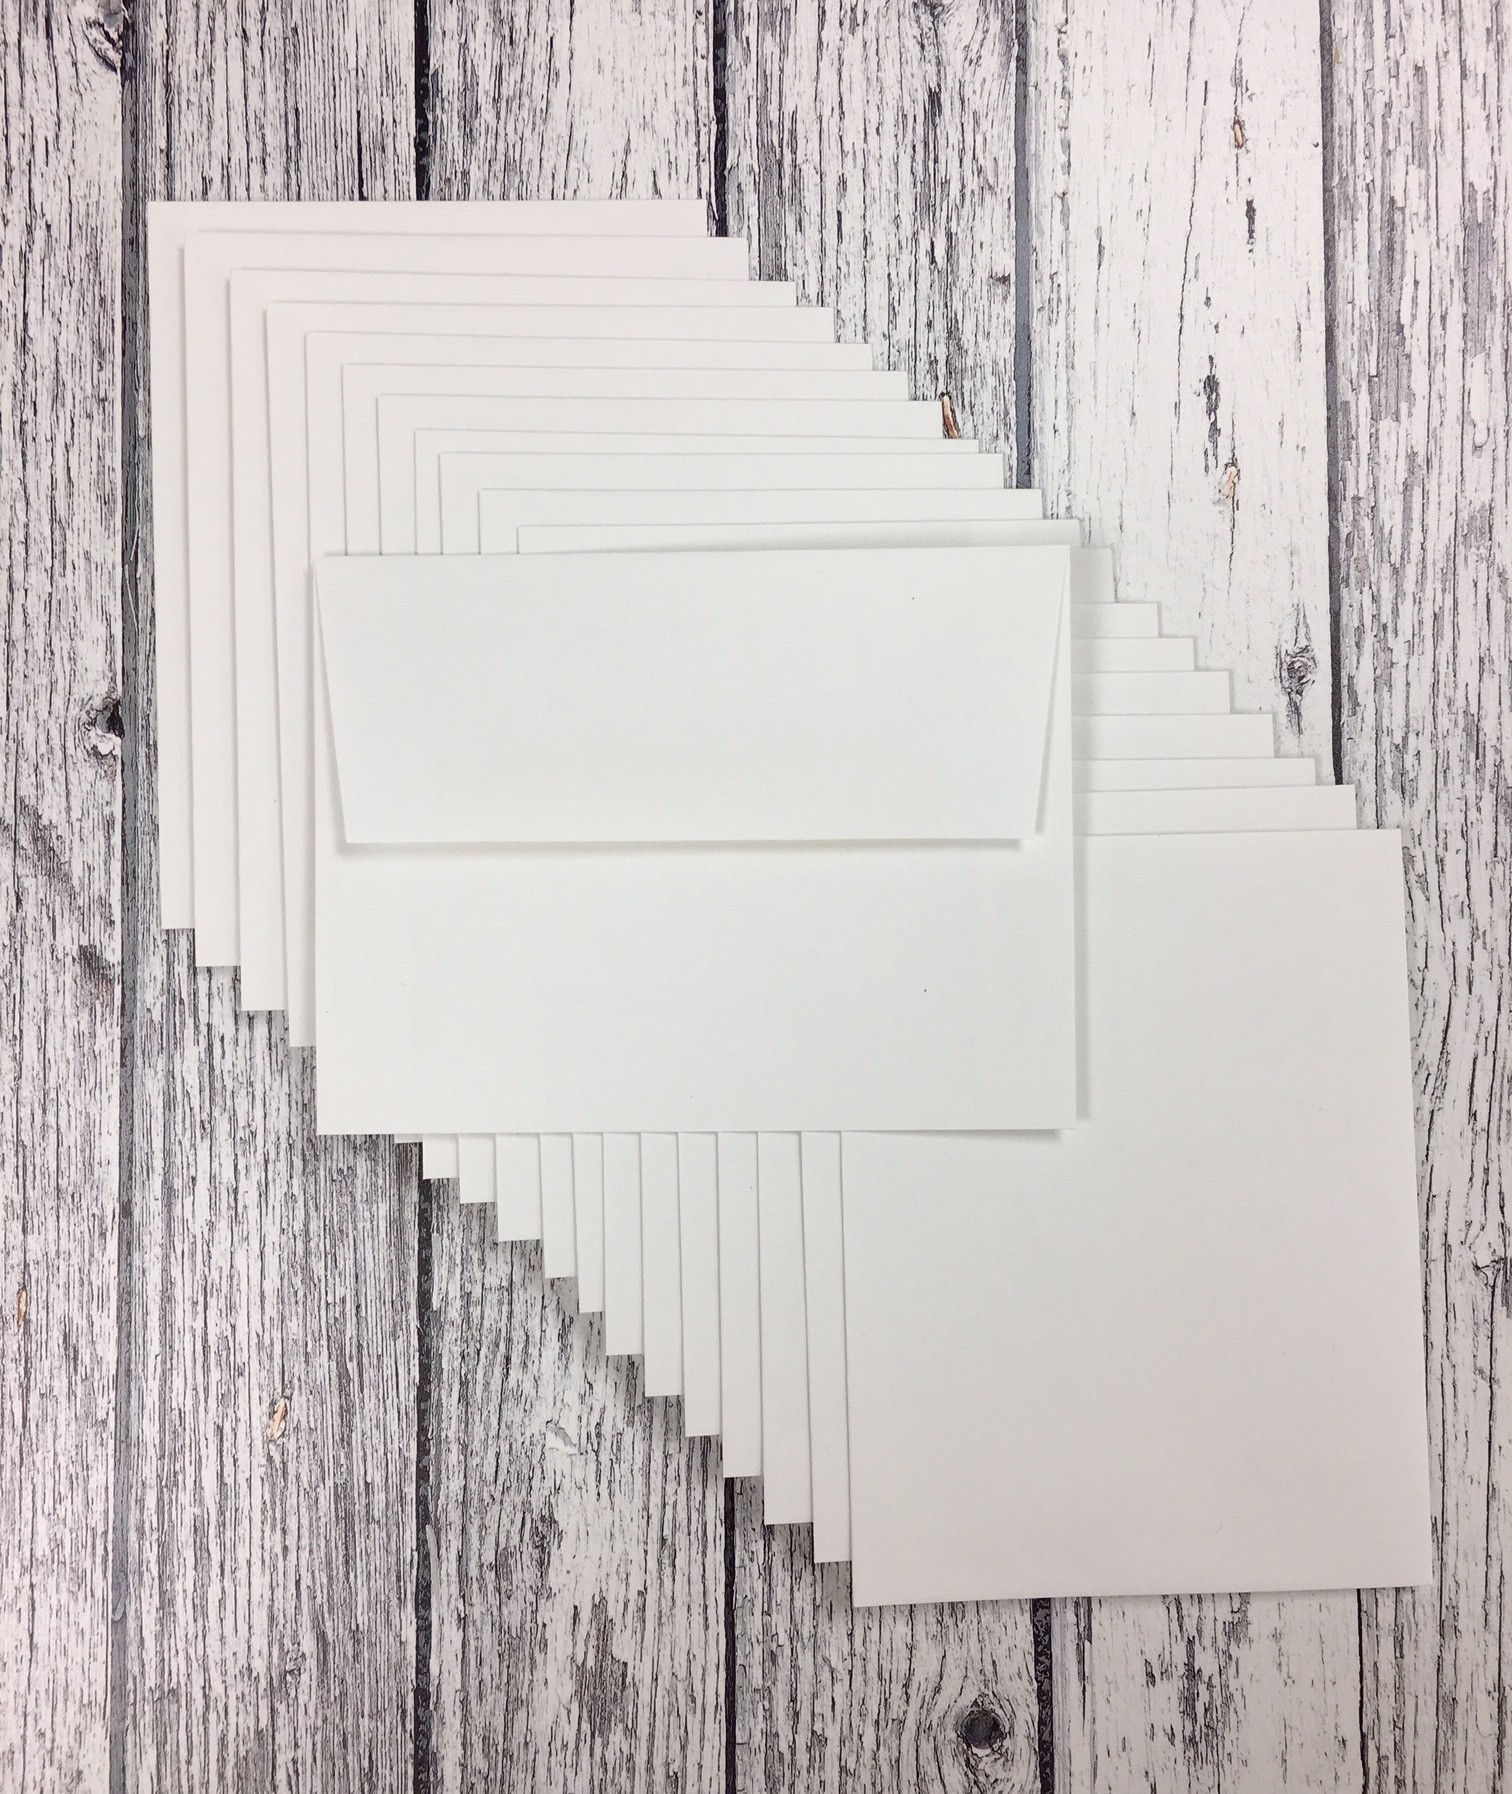 *NEW* - Taylored Expressions - A2 Envelopes - Sugar Cube - pack of 10